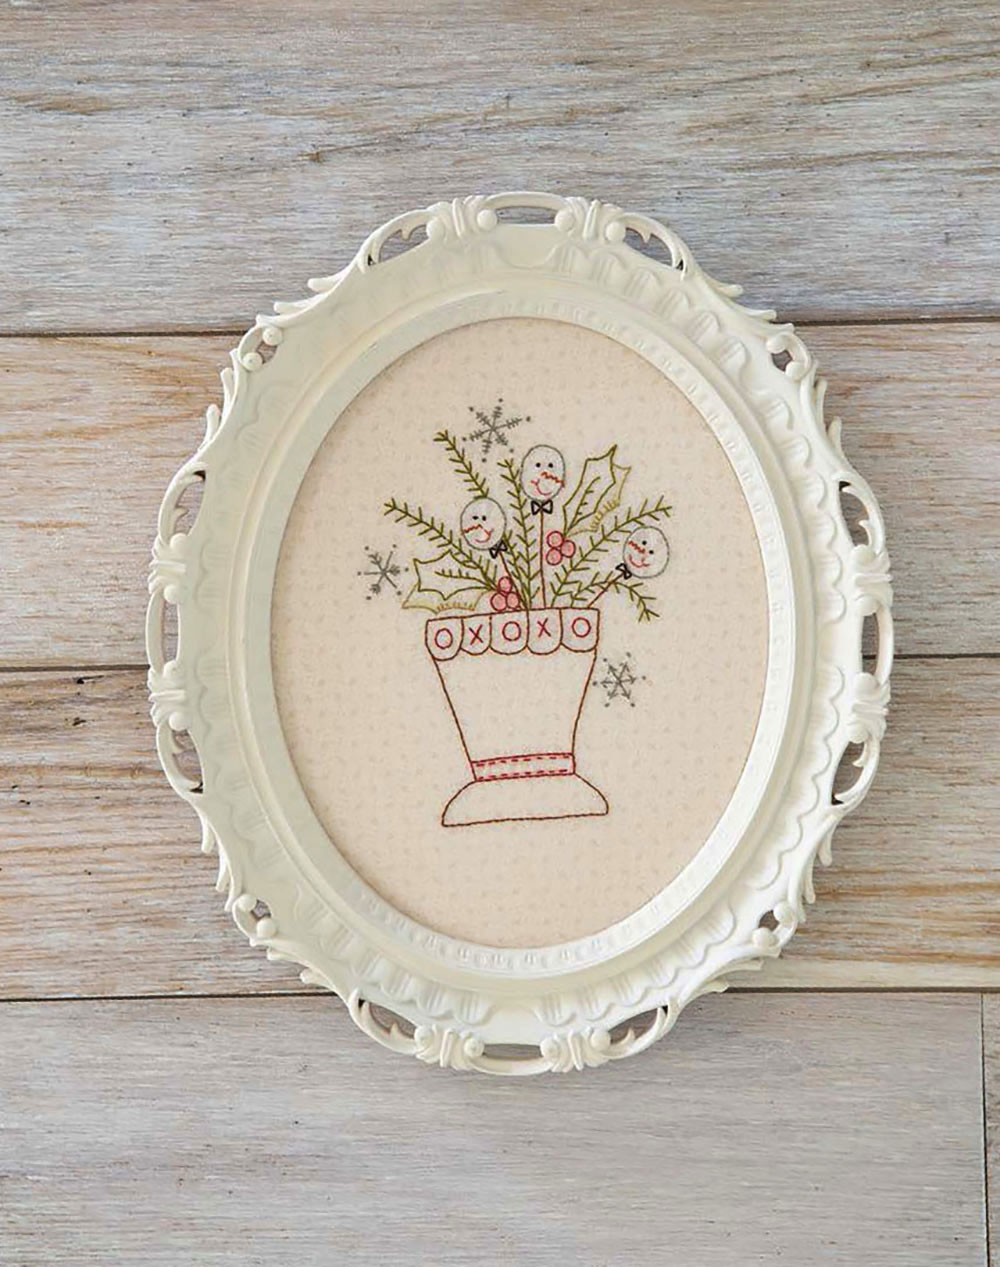 B1479, Stitched So Sweet - Whimsical Embroidery, Patchwork, and Appliqué, by Tracy Souza